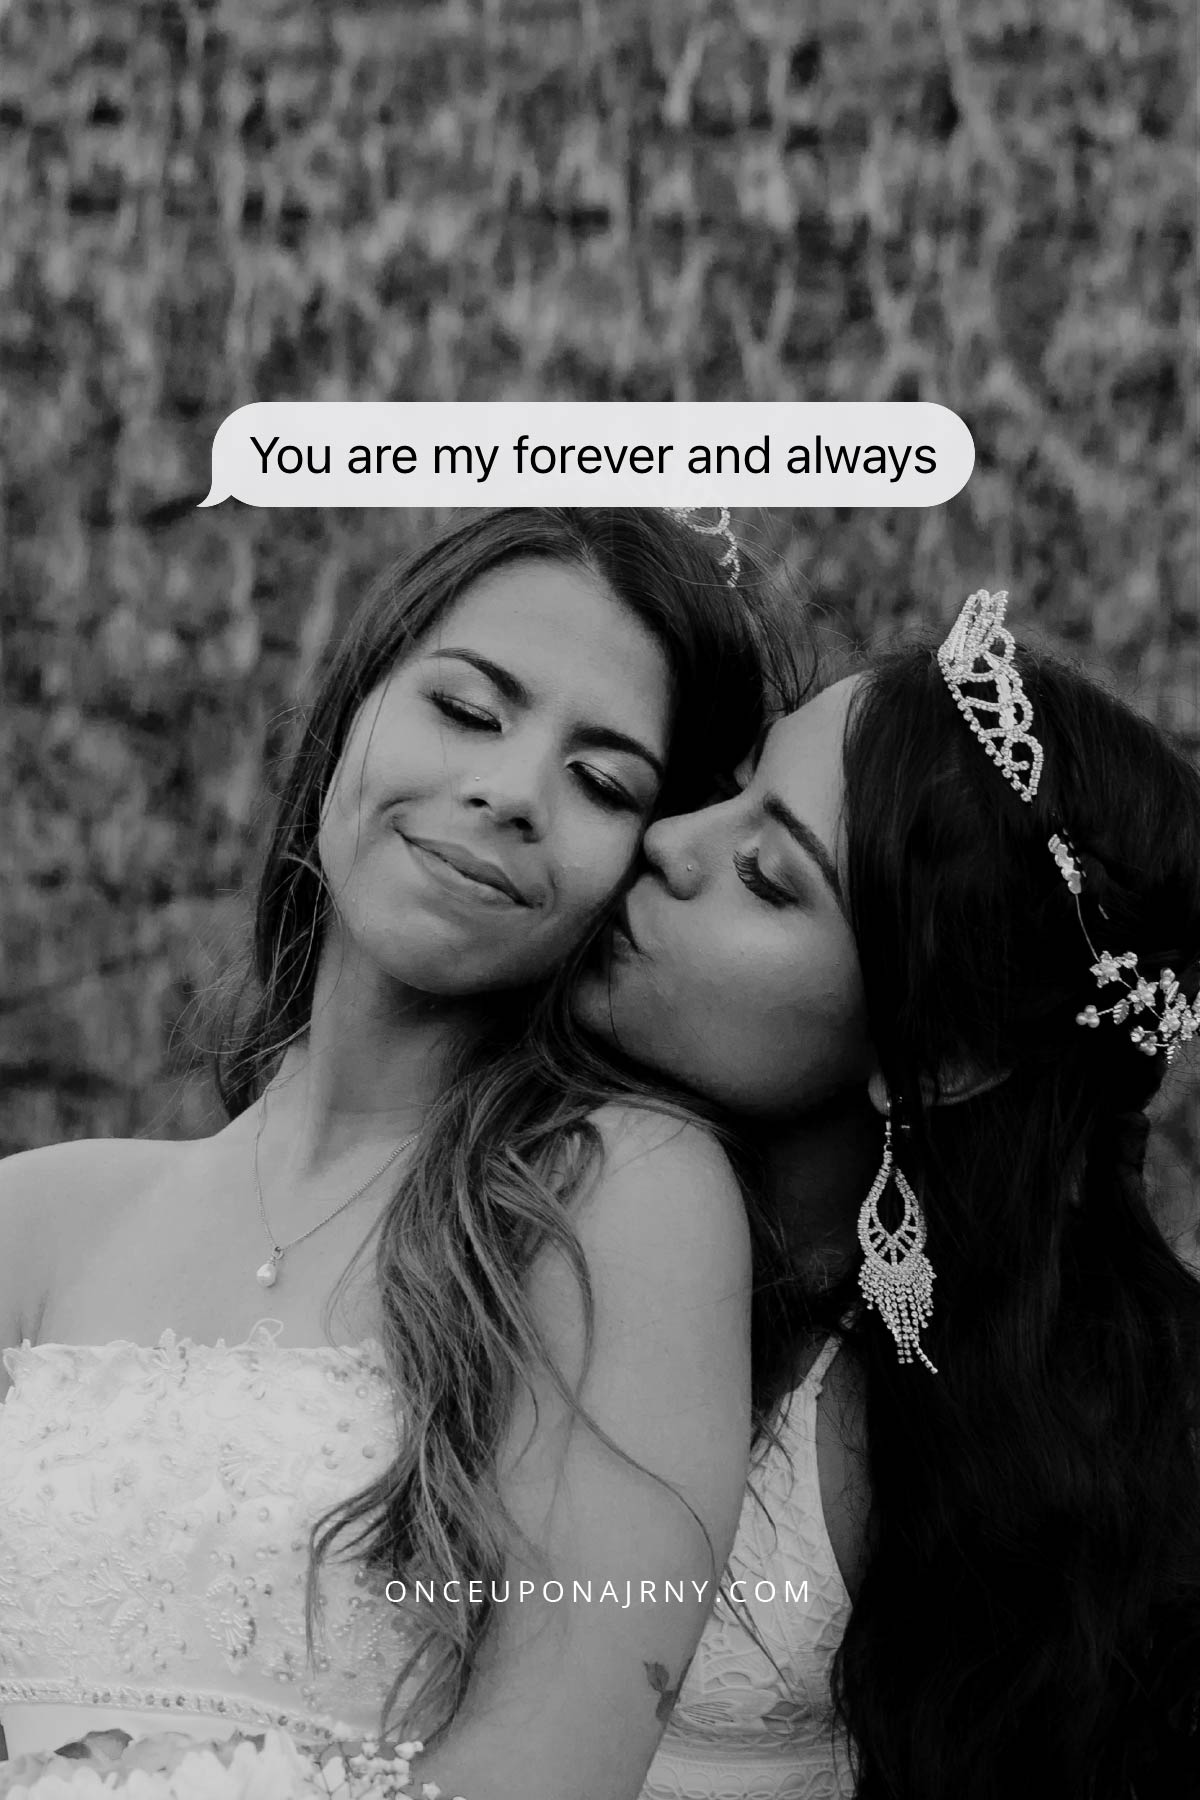 You are my forever and always lesbian saying